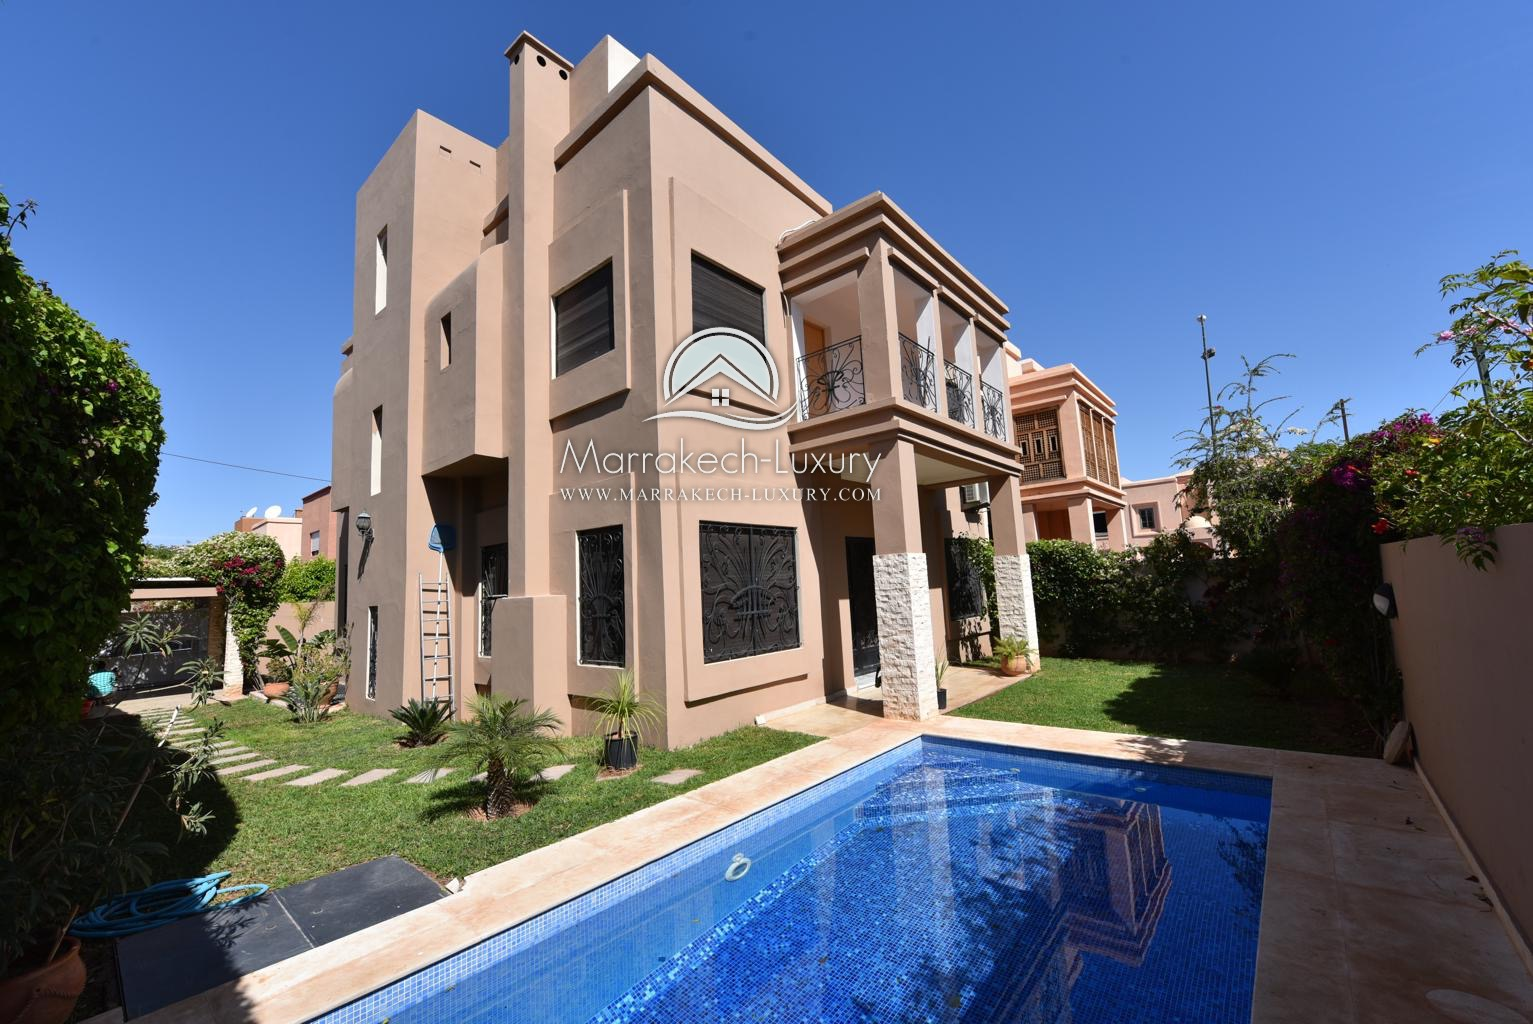 Villa moderne louer targa marrakech agence for Agence immobiliere appartement a louer